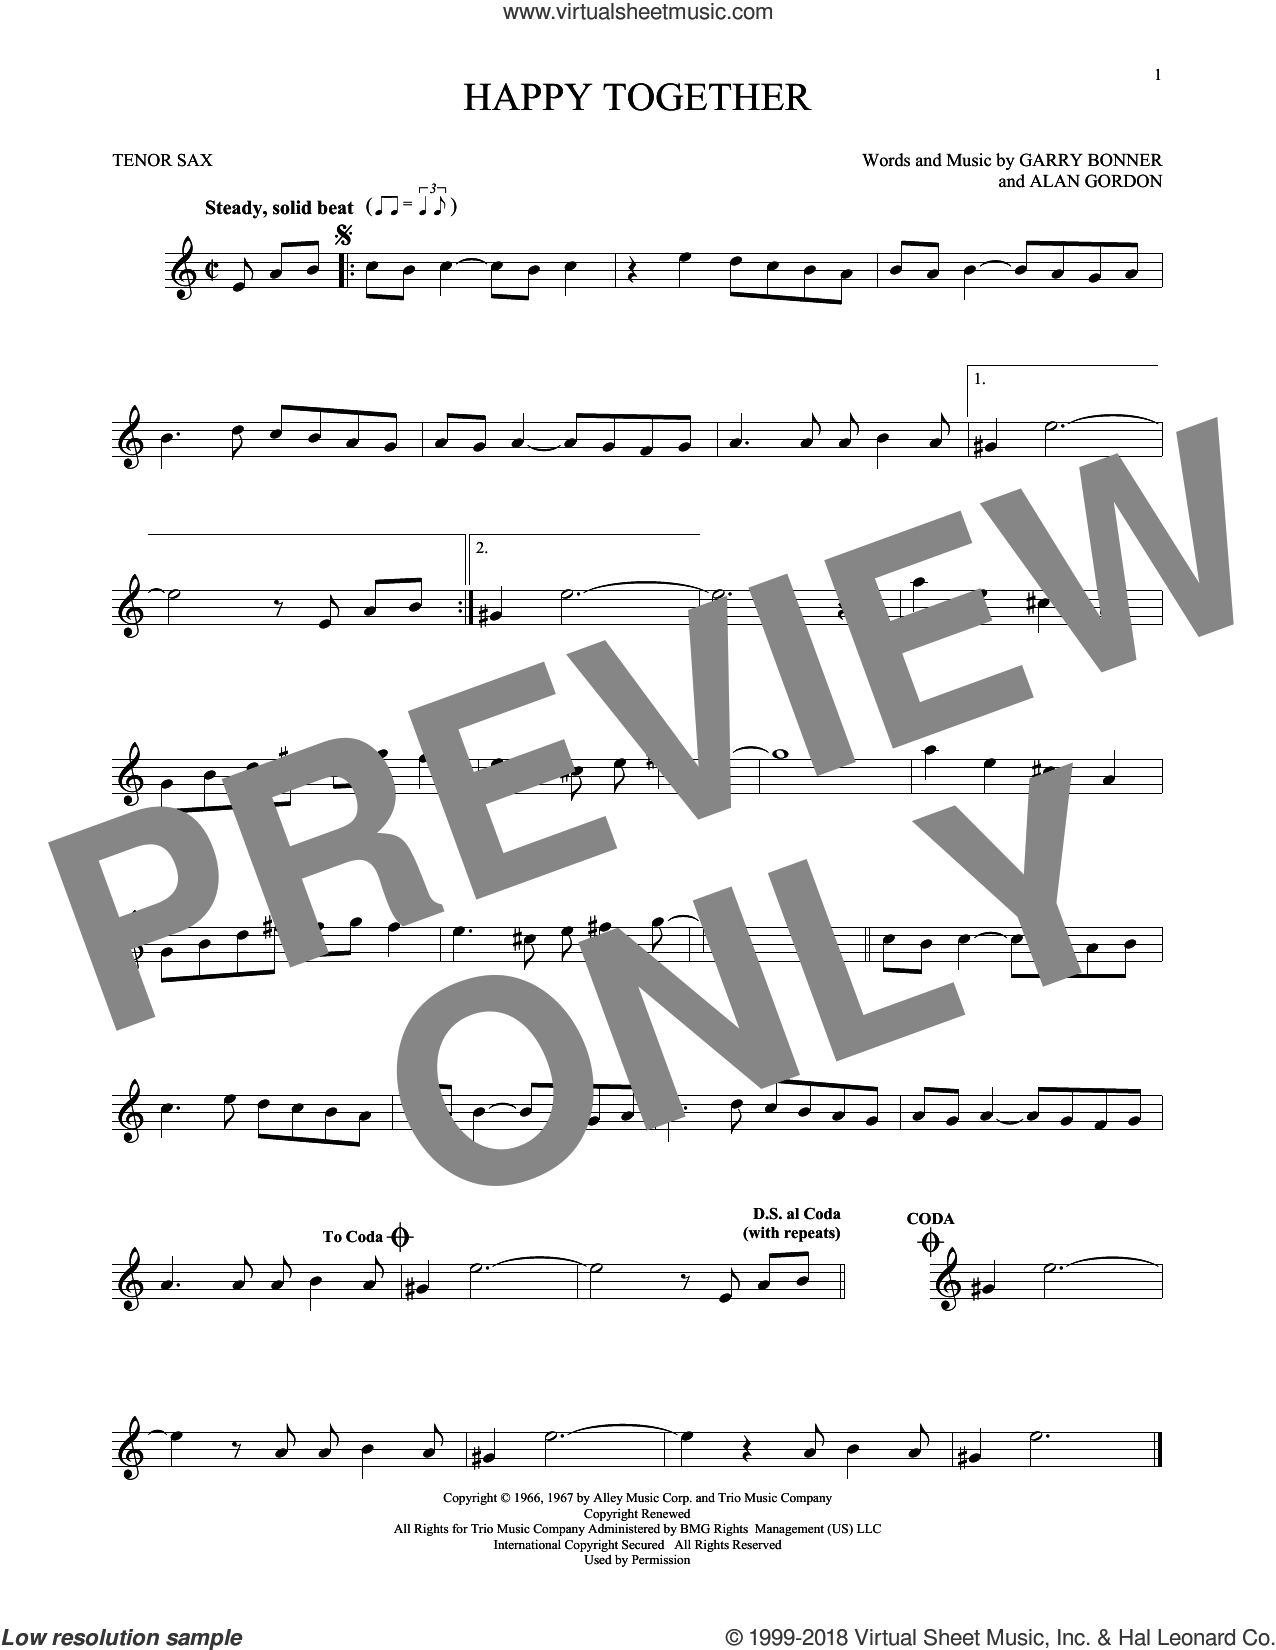 Happy Together sheet music for tenor saxophone solo by The Turtles, Alan Gordon and Garry Bonner, intermediate skill level